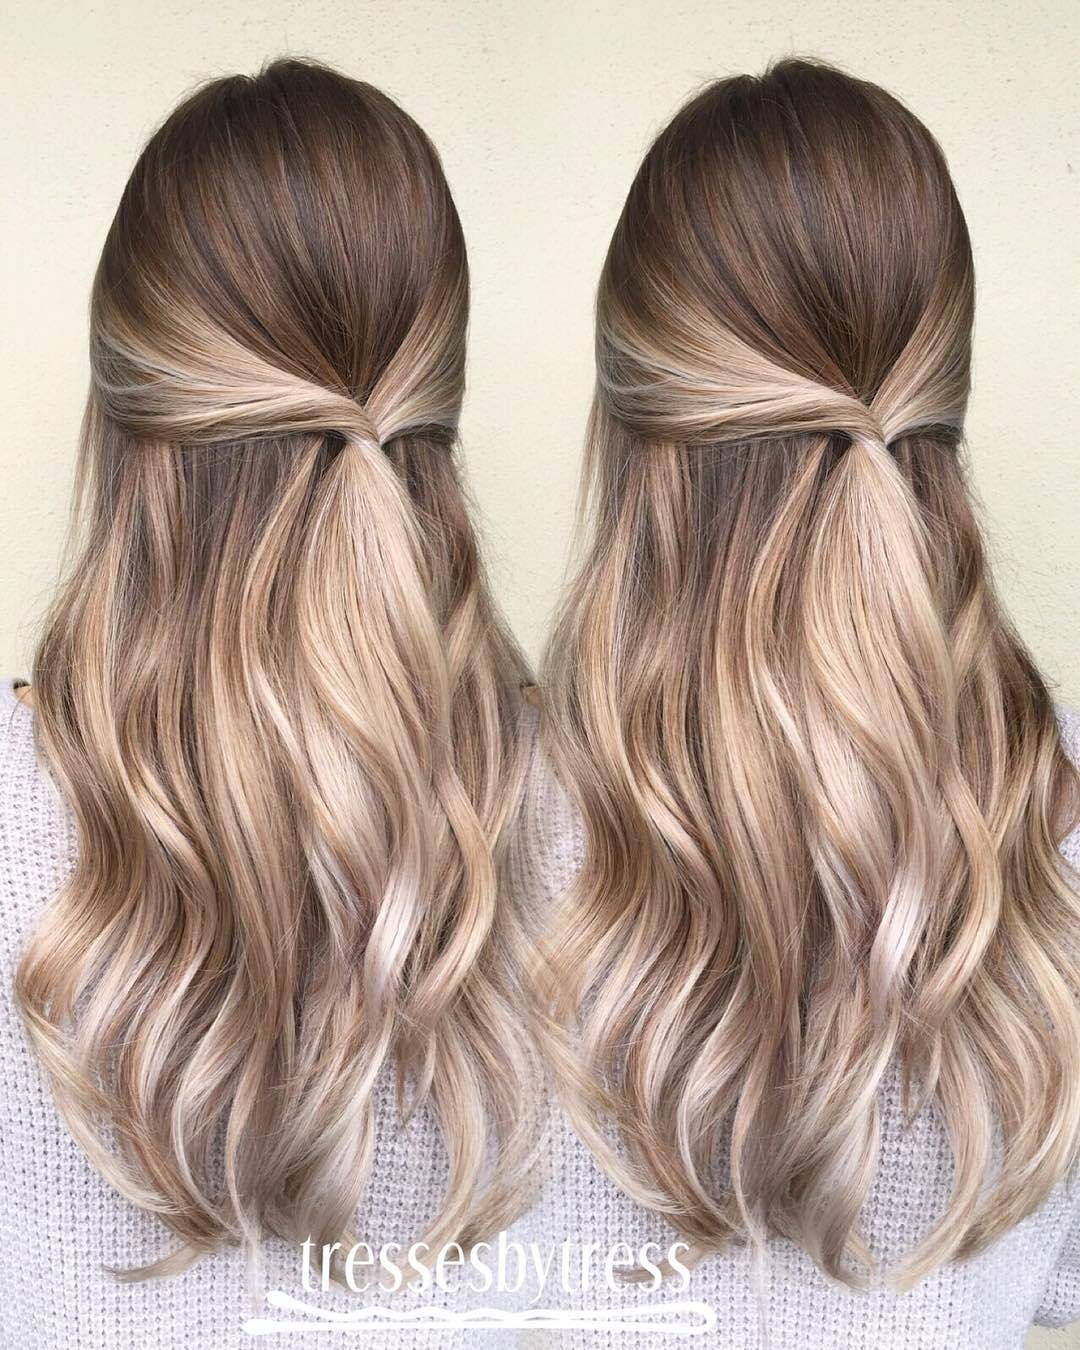 7 Schone Blonde Balayage Haarfarbe Ideen Hairs Blonde Balayage